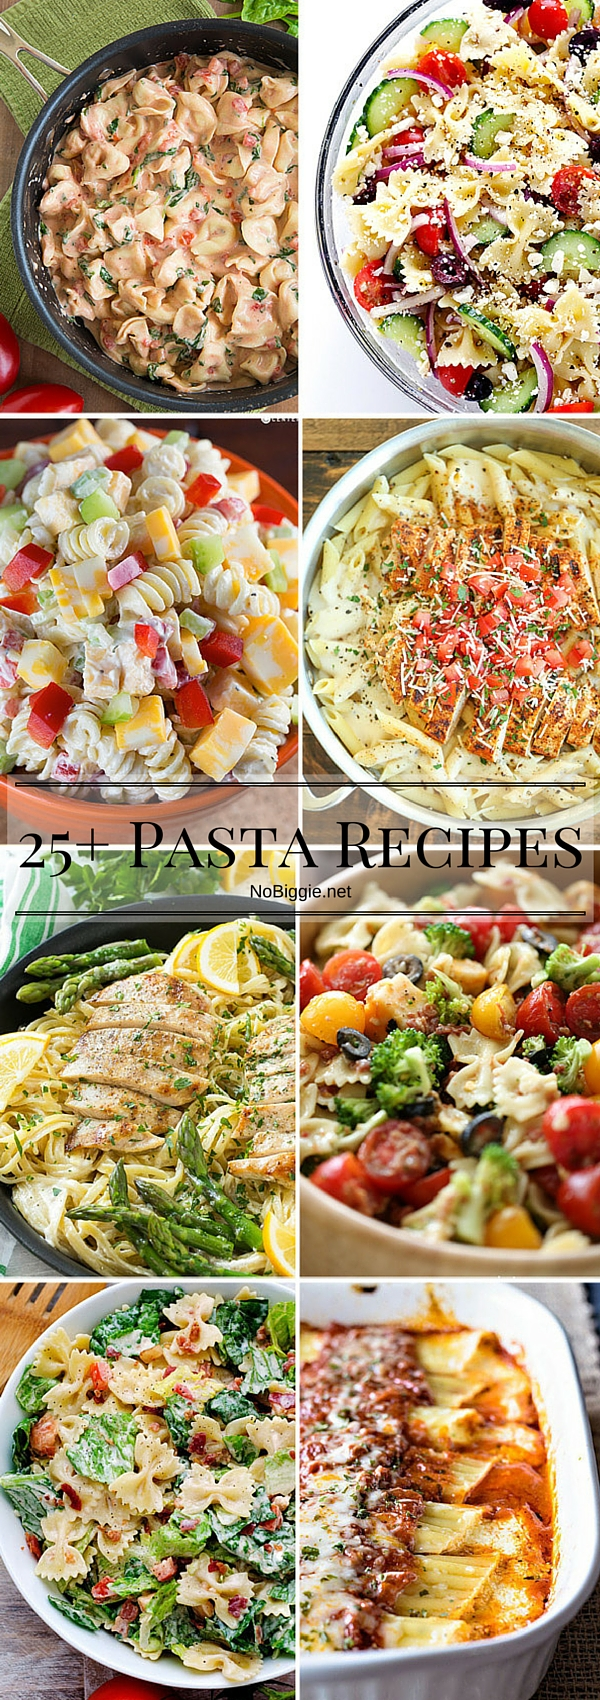 Pasta Recipes - easy dishes to get together quick and there are so many ways to switch it up. #pasta #pastarecipes #easydinners #dinnerrecipes #dinner